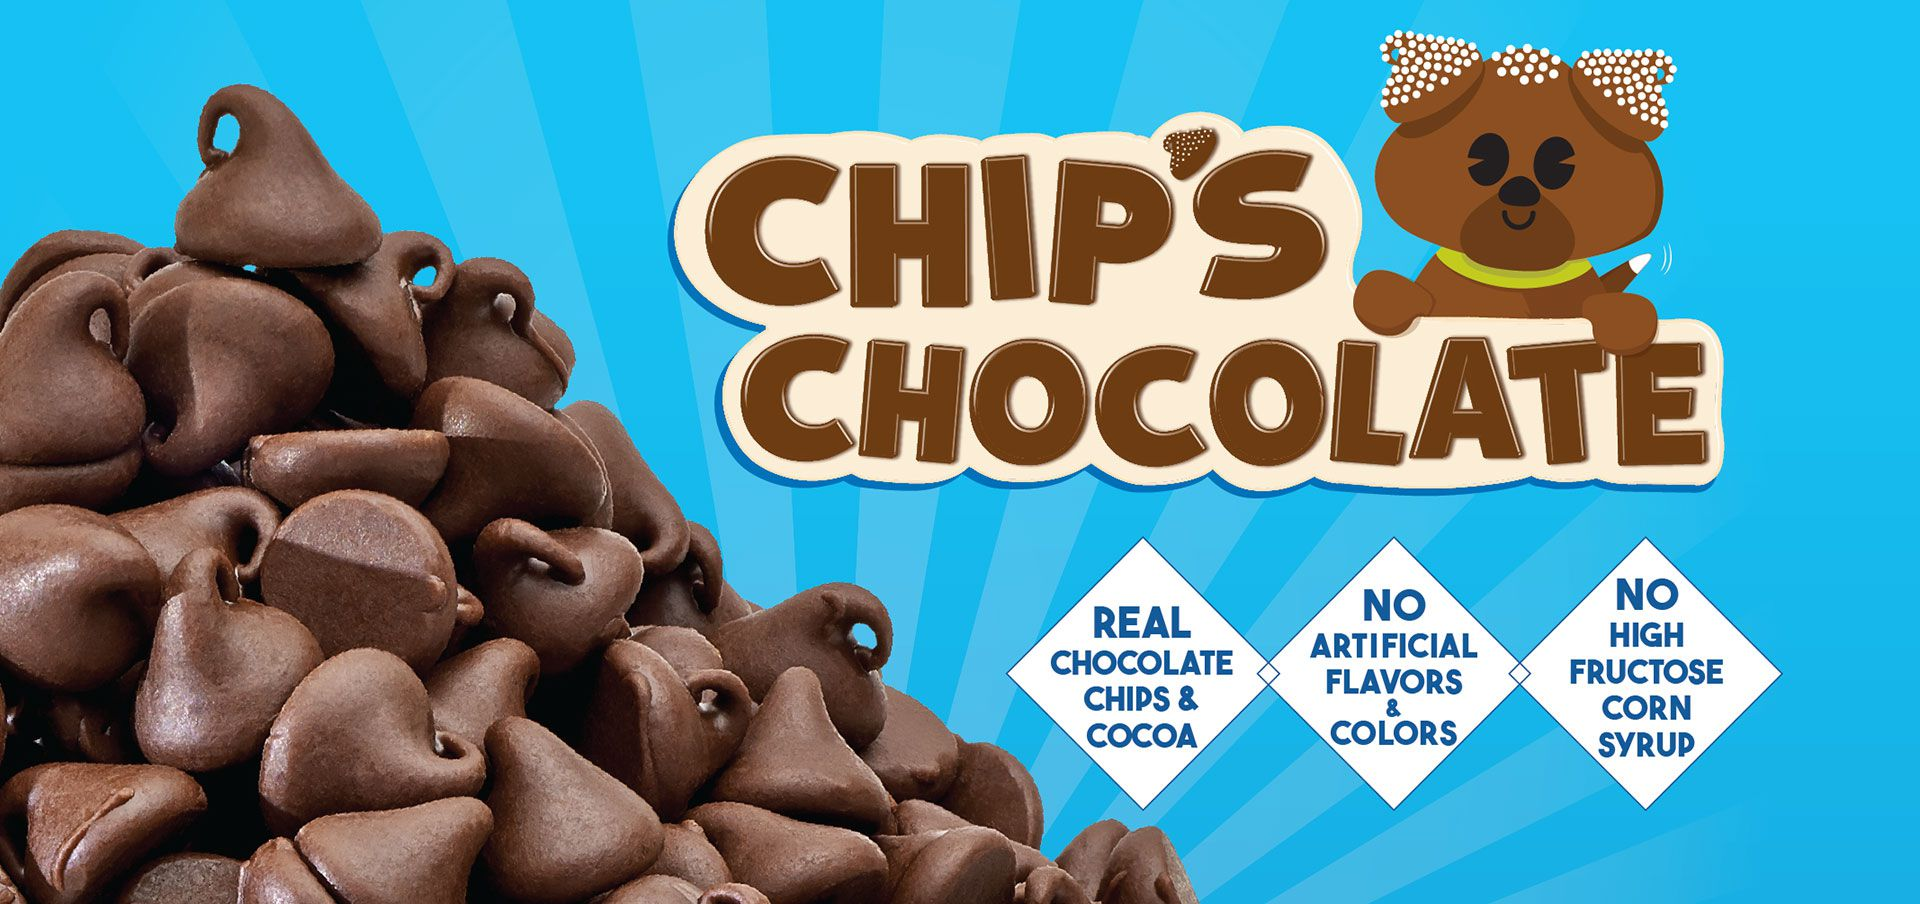 chip's chocolate label image